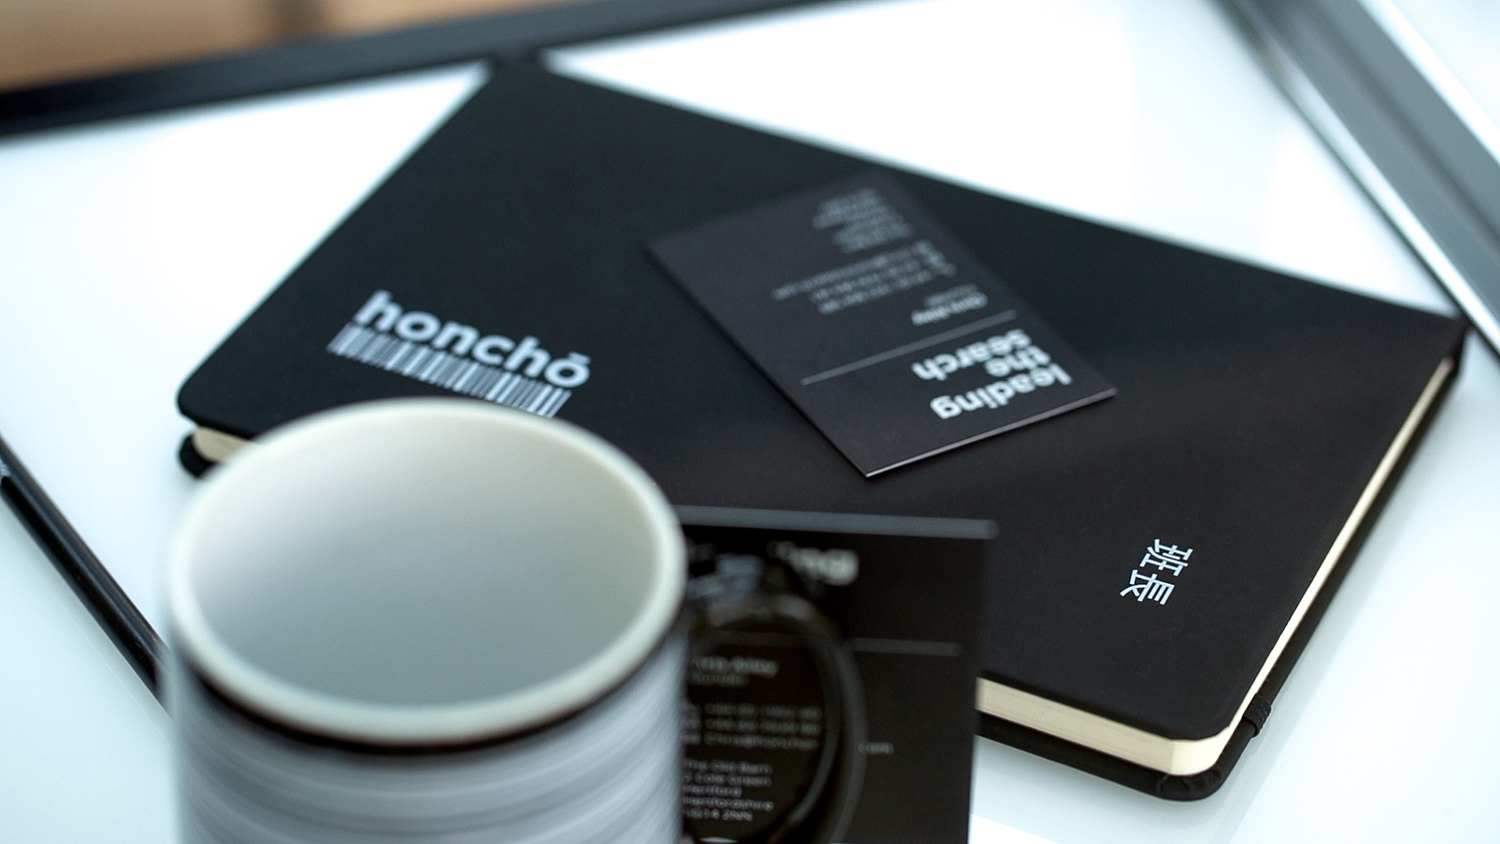 Honcho Notepads and Merchandise